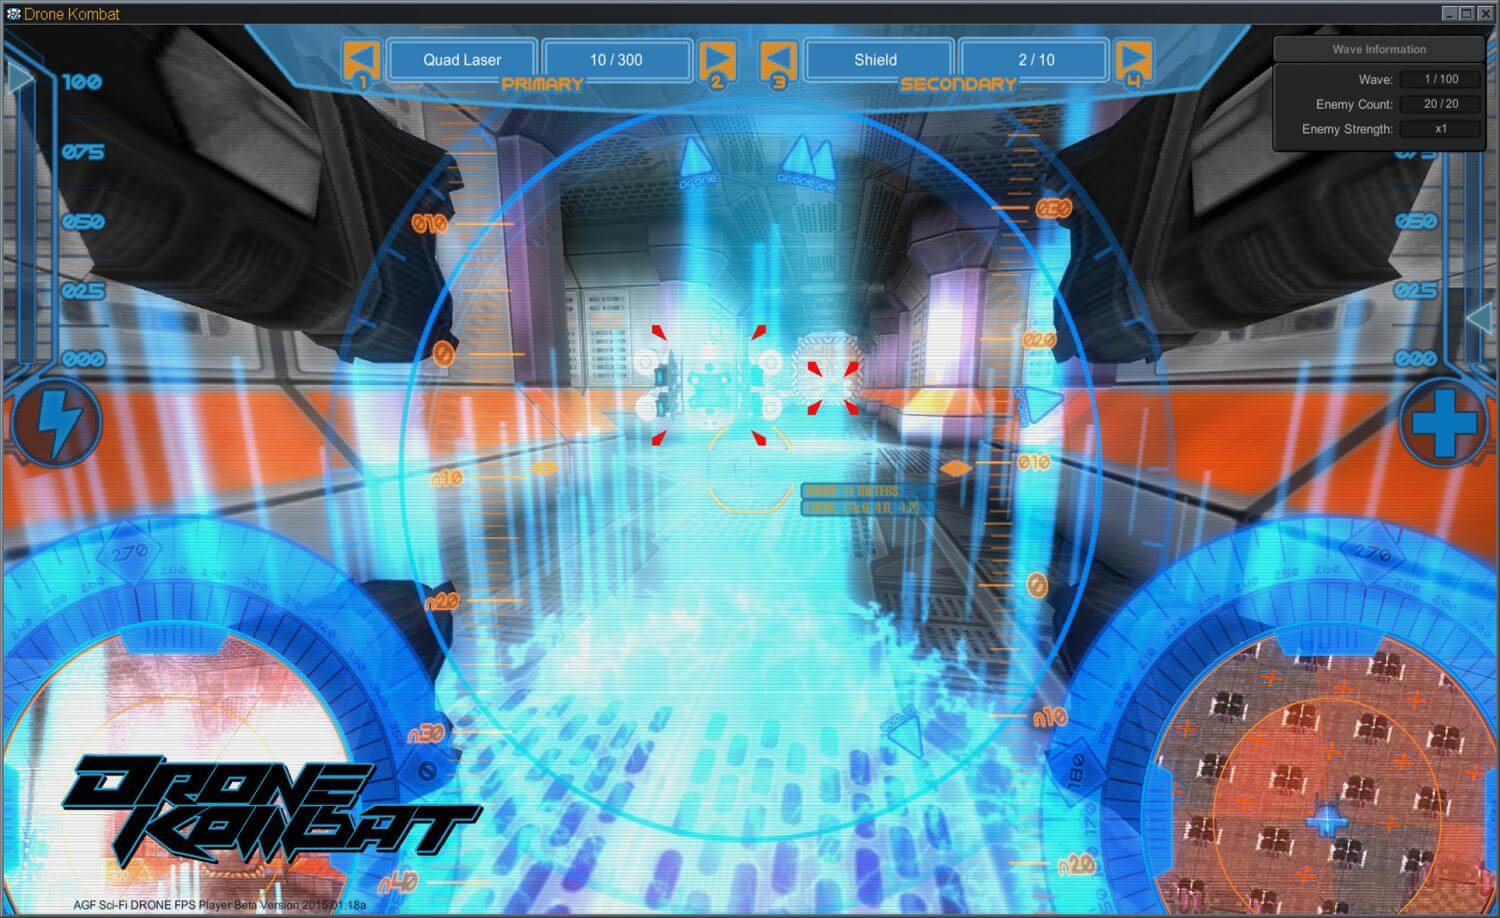 Axis Game Factory's AGFPRO - Drone Kombat FPS Multiplayer